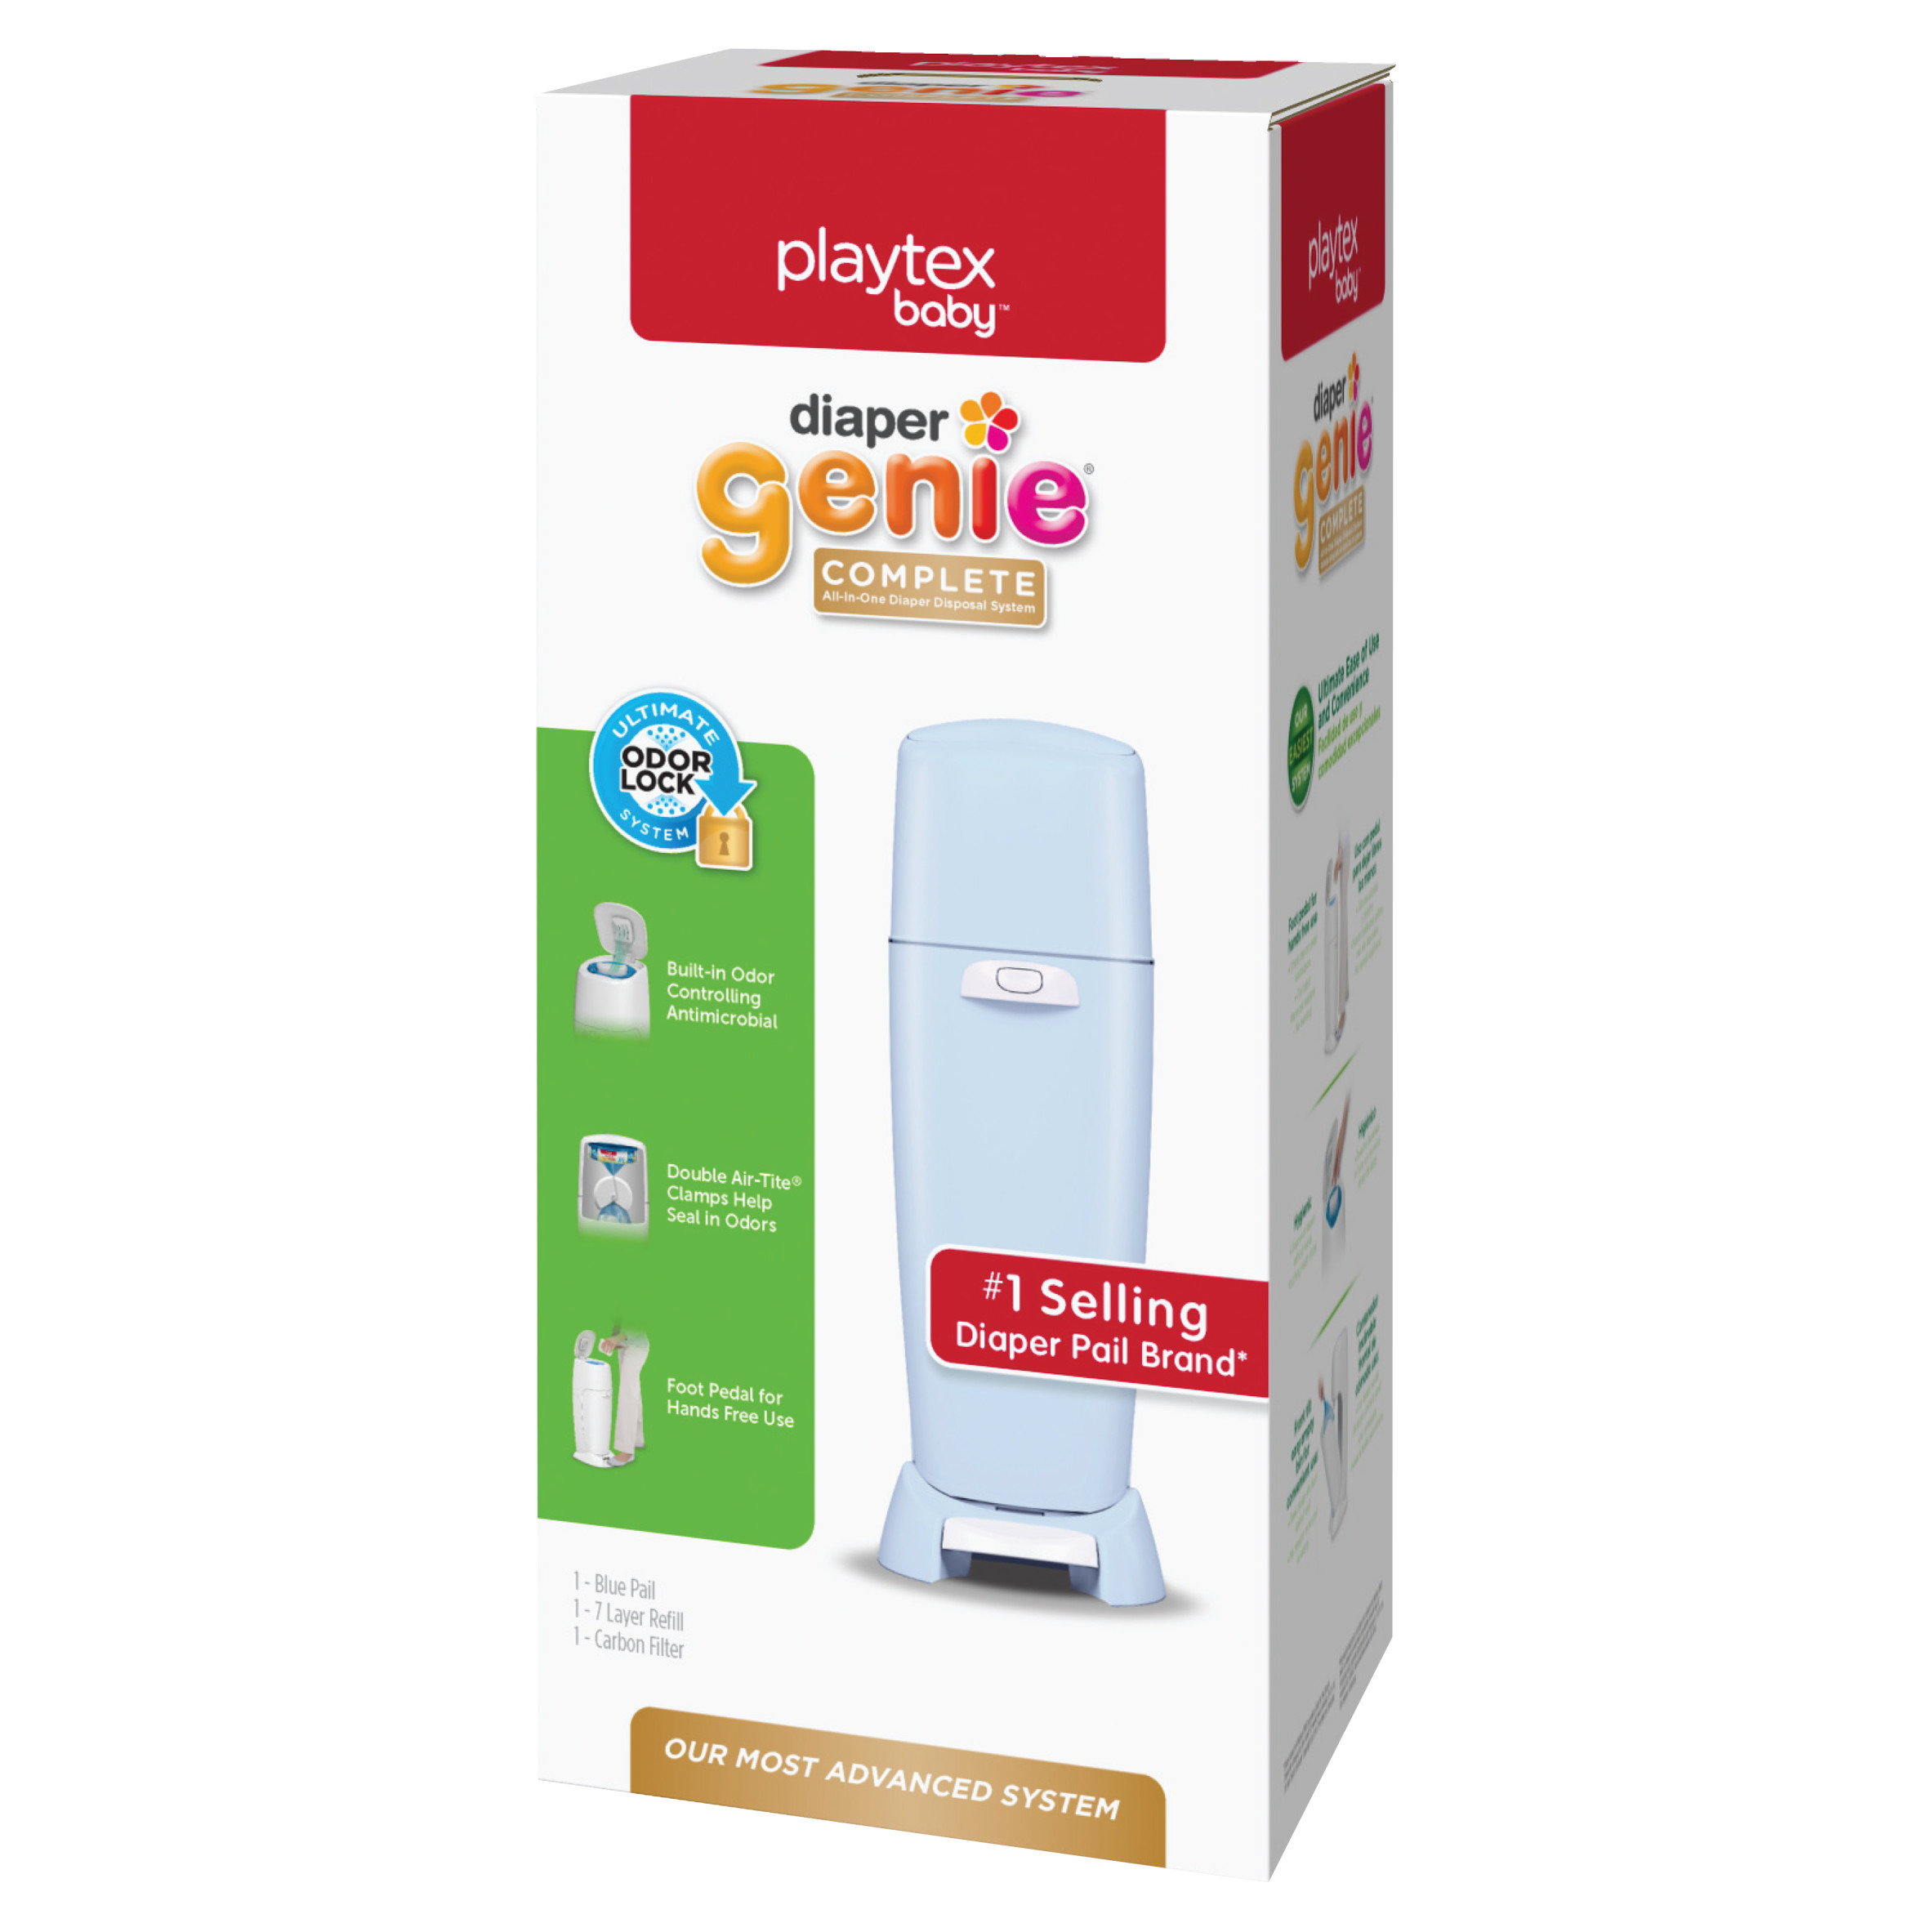 Playtex Diaper Genie Complete Blue Diaper Pail with 1 Refill by Playtex Baby